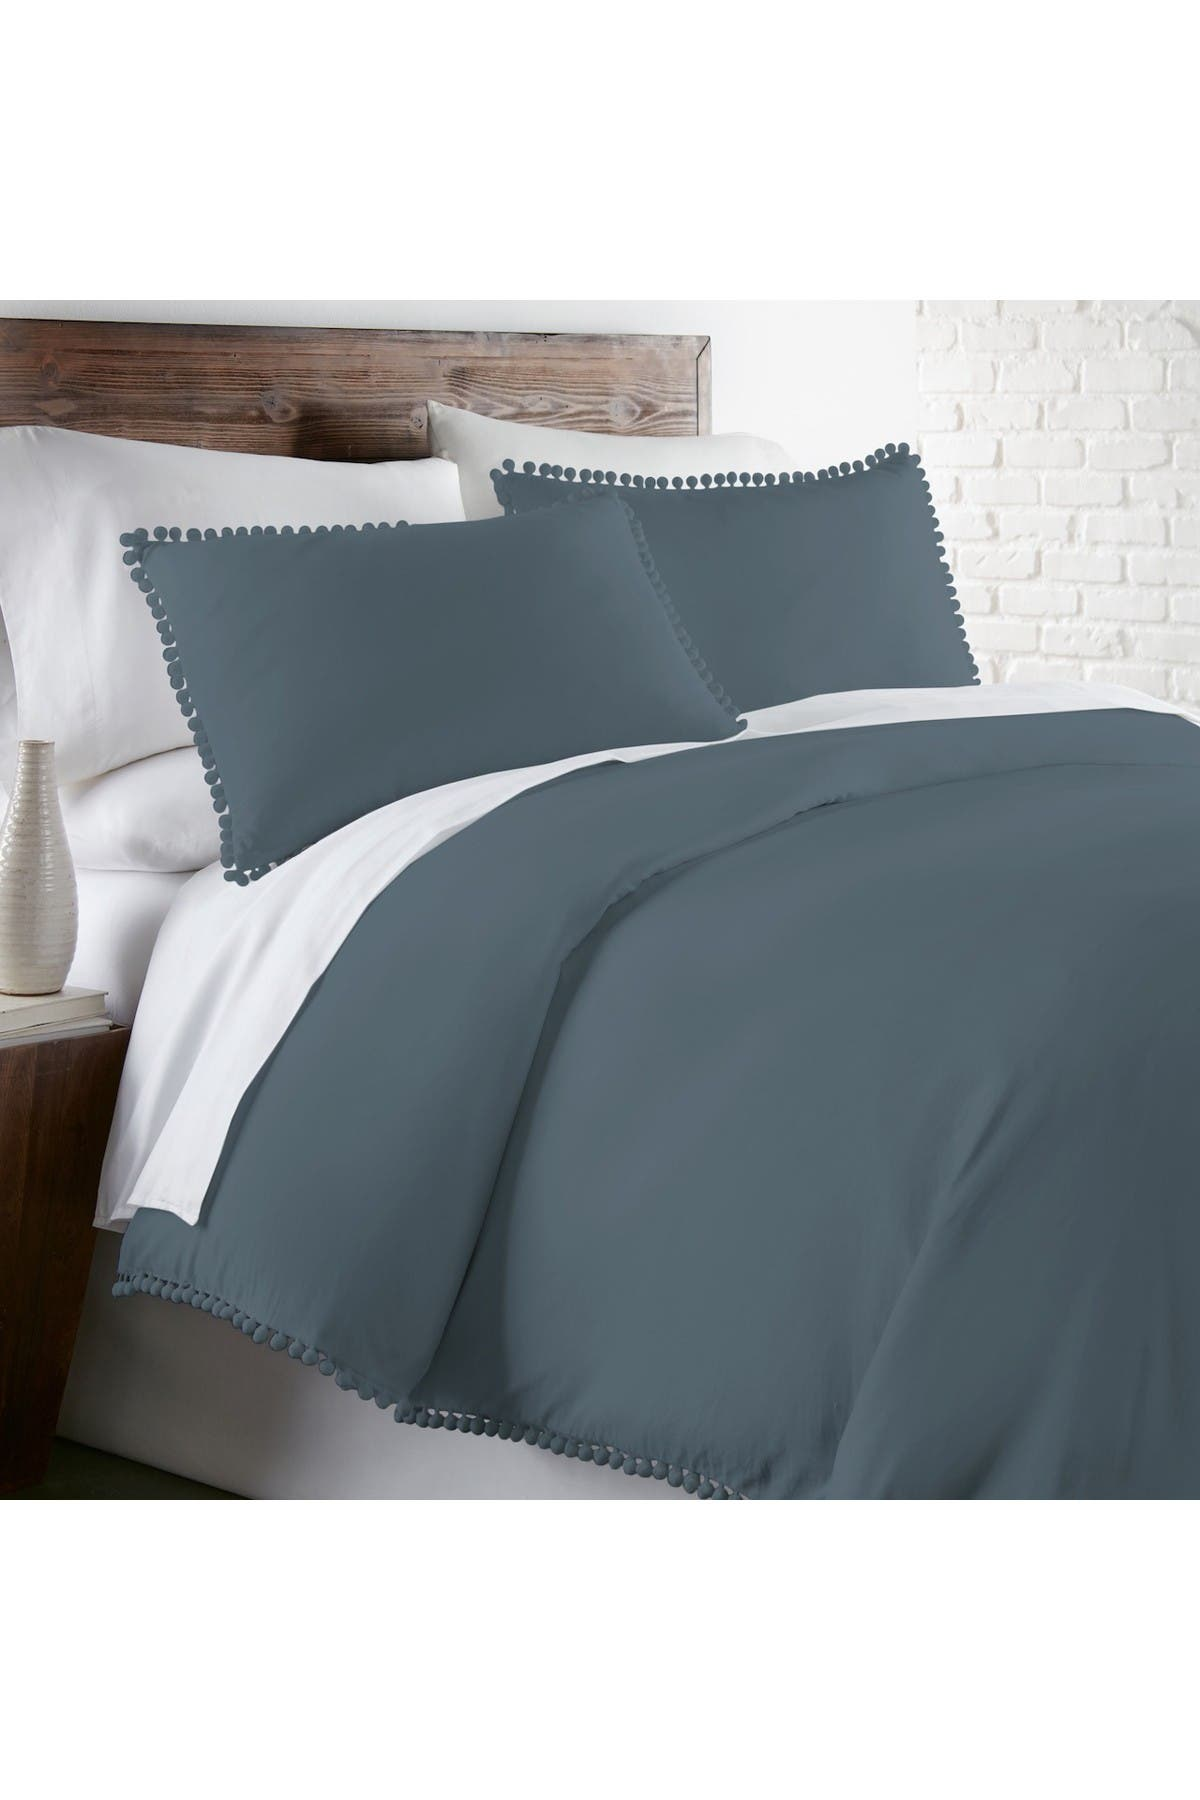 Image of SOUTHSHORE FINE LINENS Classic Duvet Cover Set with Pre-Washed Fabric and Pom Pom Decorative Trim - Full/Queen